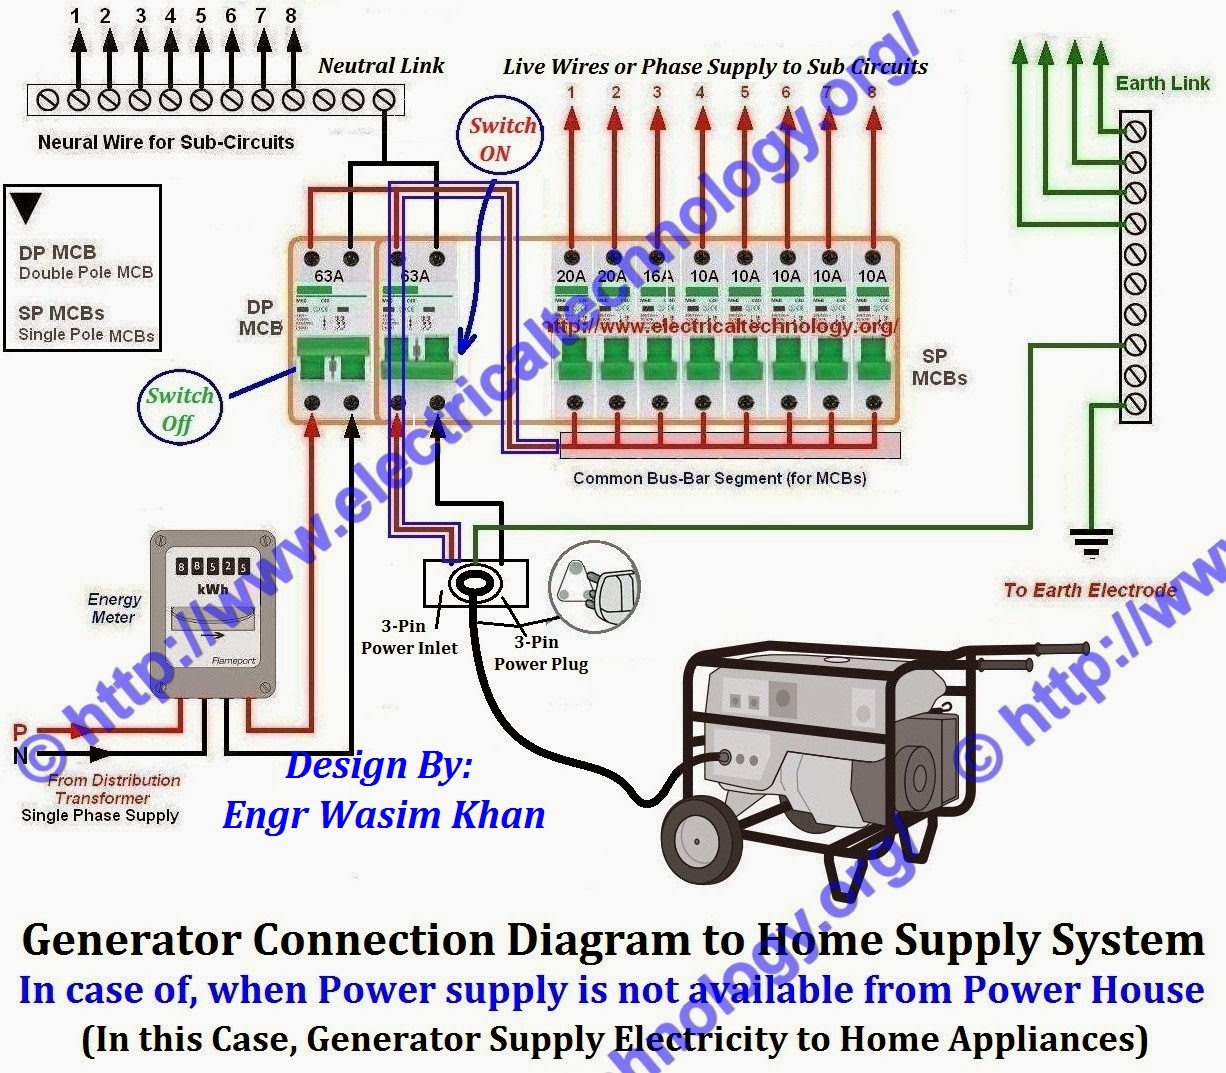 portable generator to house wiring diagram with Whole House Generator Wiring Diagram on Infoview as well Index php further 2000 Chevrolet 2500 Express Van Wiring as well Home Standby Generator Wiring Diagram together with How To Connect Solar Power To Ir Beam Sensor And Alarm System.